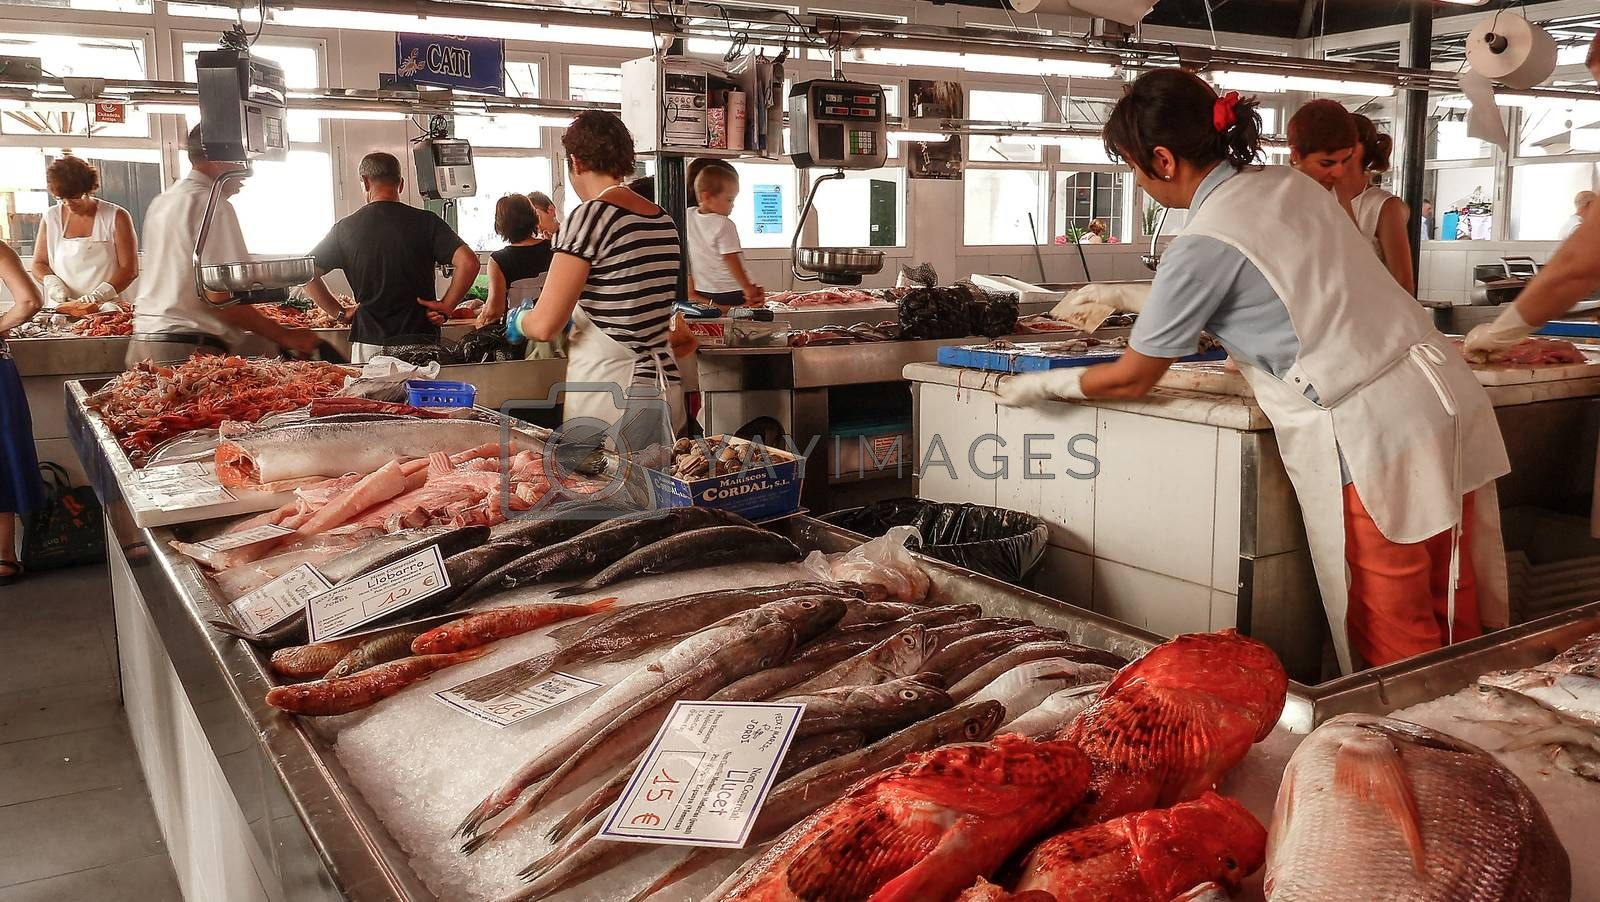 Menorca, Spain - june 28 - 2012 - View of the fish market in Ciutadella de Menorca, with various colorful fish for sale, price tags in the foreground and tourist customers